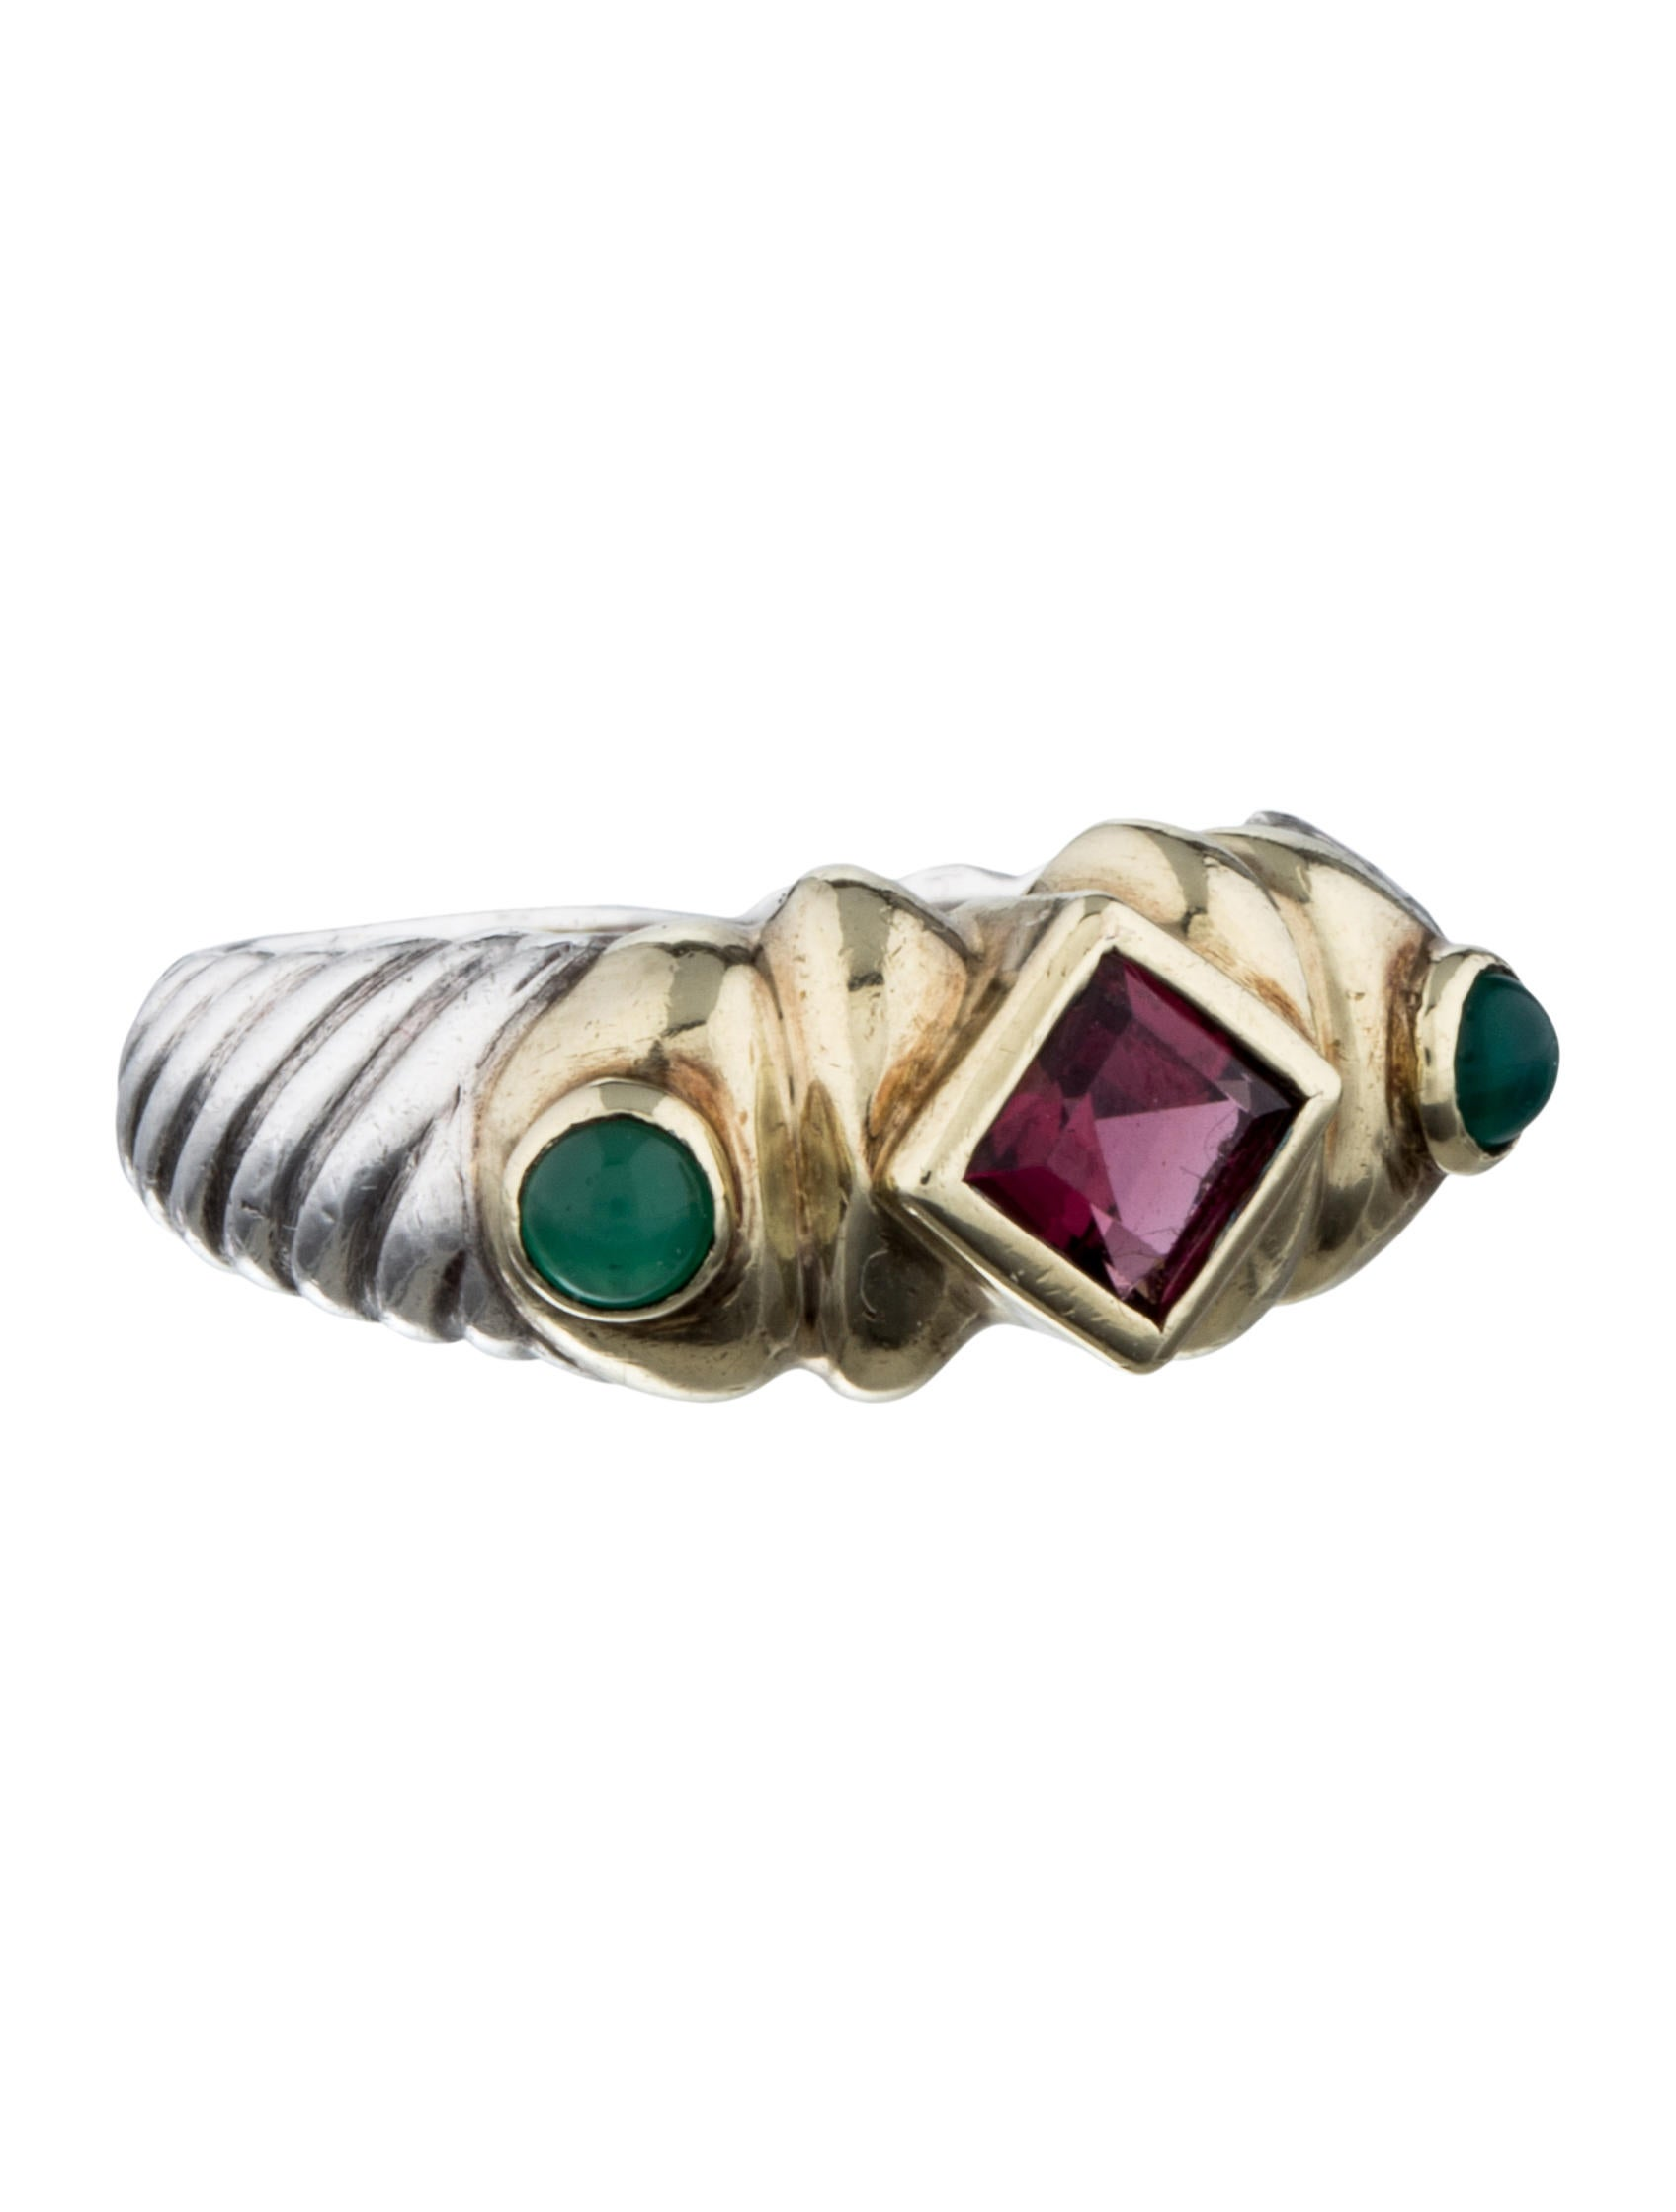 david yurman tourmaline emerald 3 ring rings